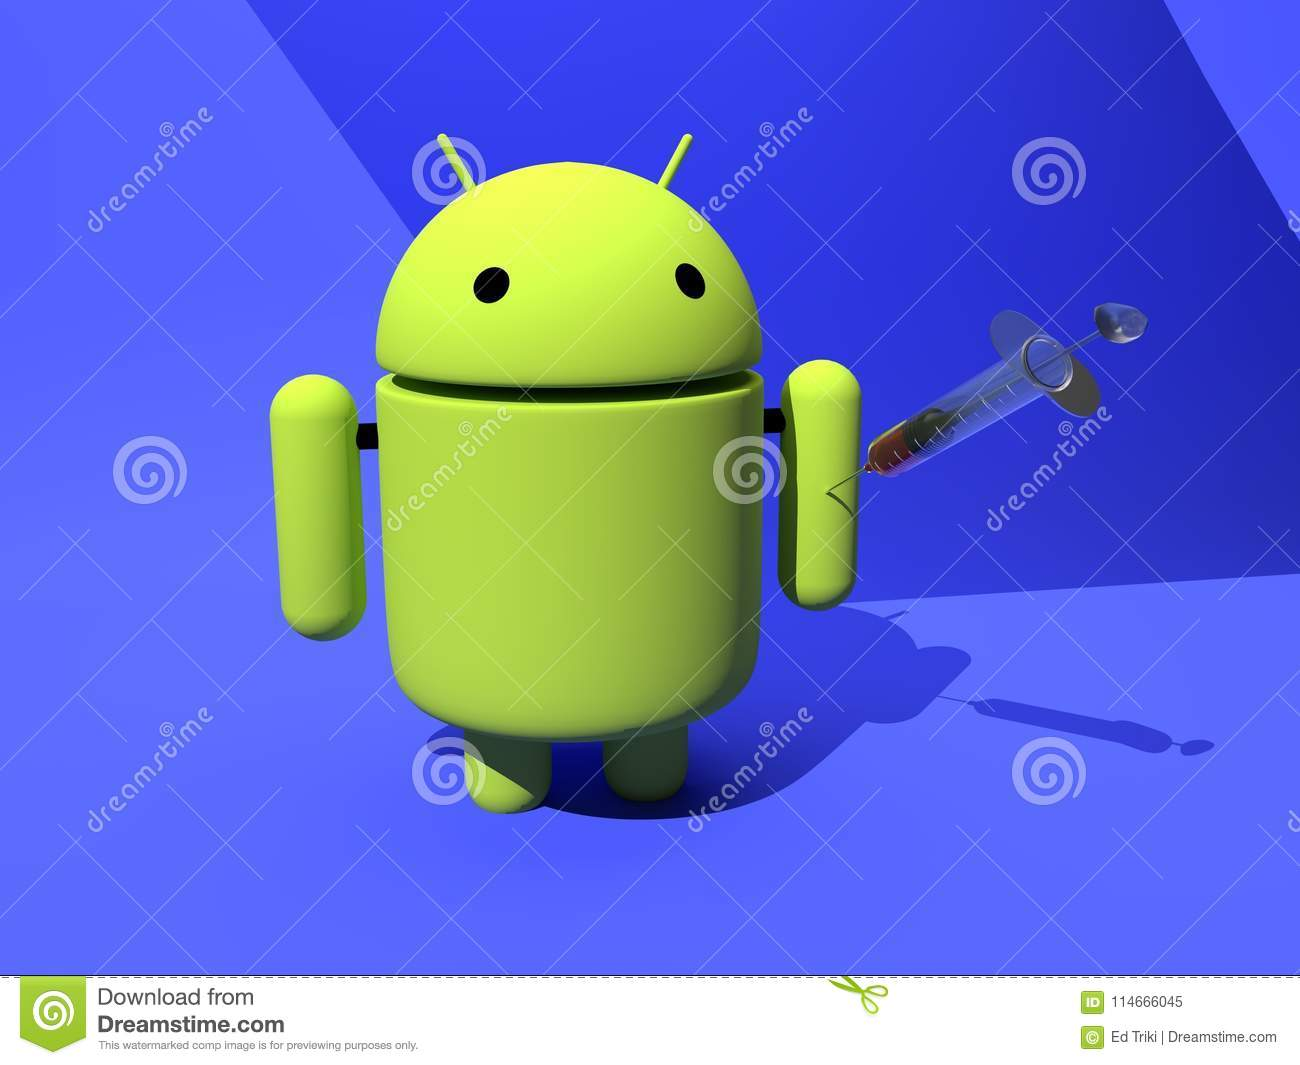 Android vaccine protection against malware, virus - 3D illustration